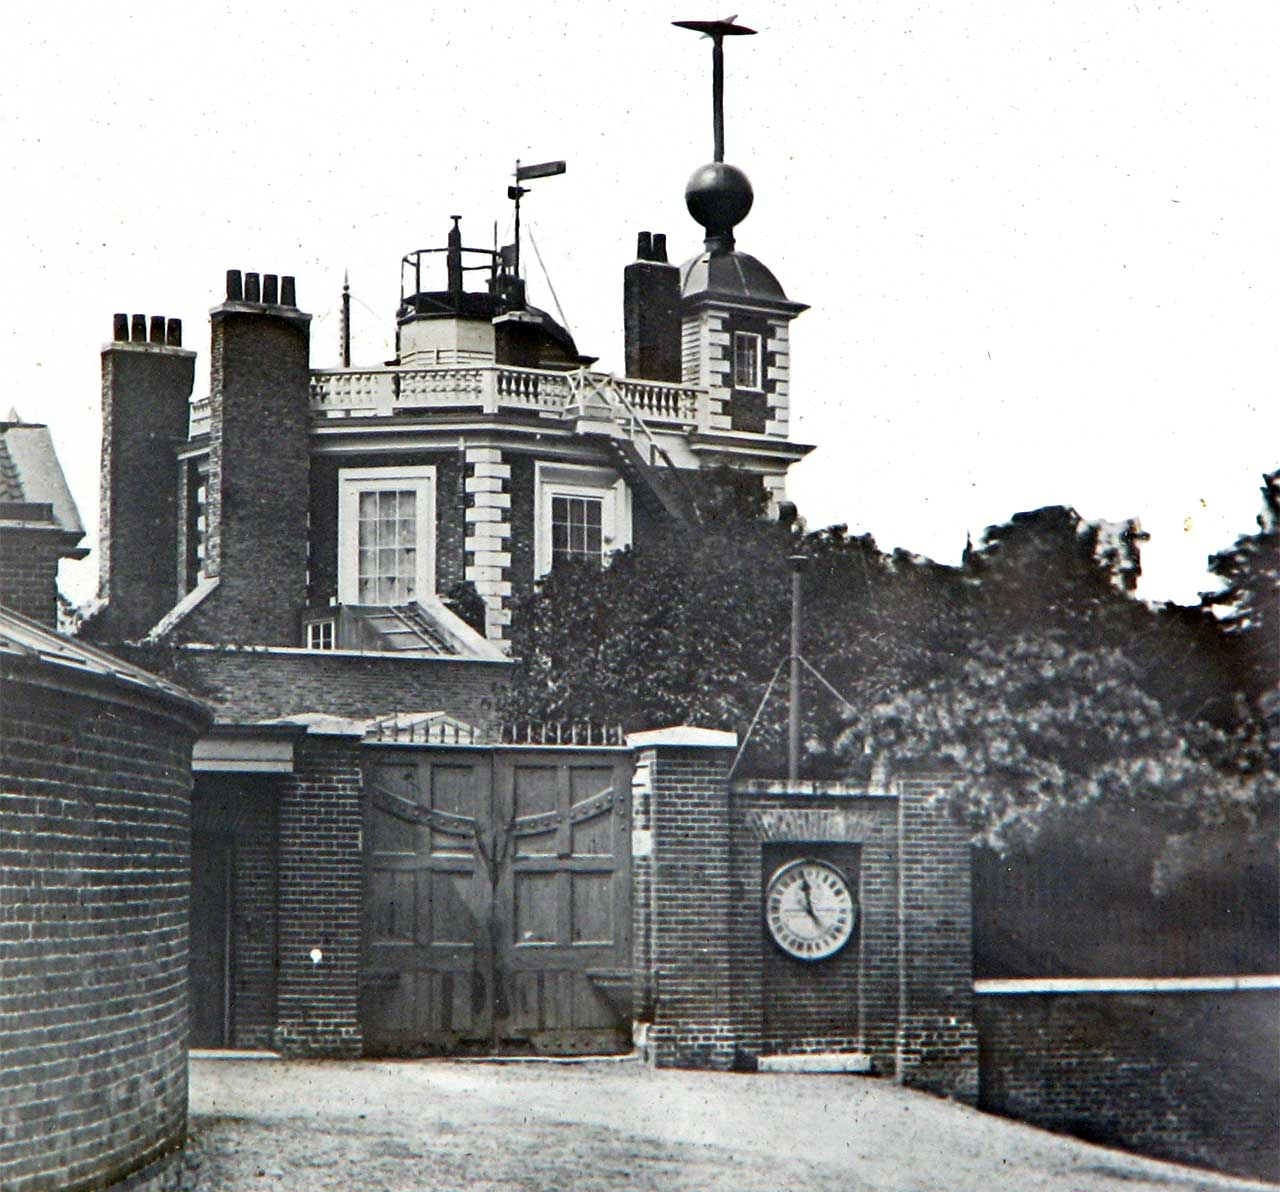 Time-Signal-Wires-1860s Obserrvatory Greenwich.jpg